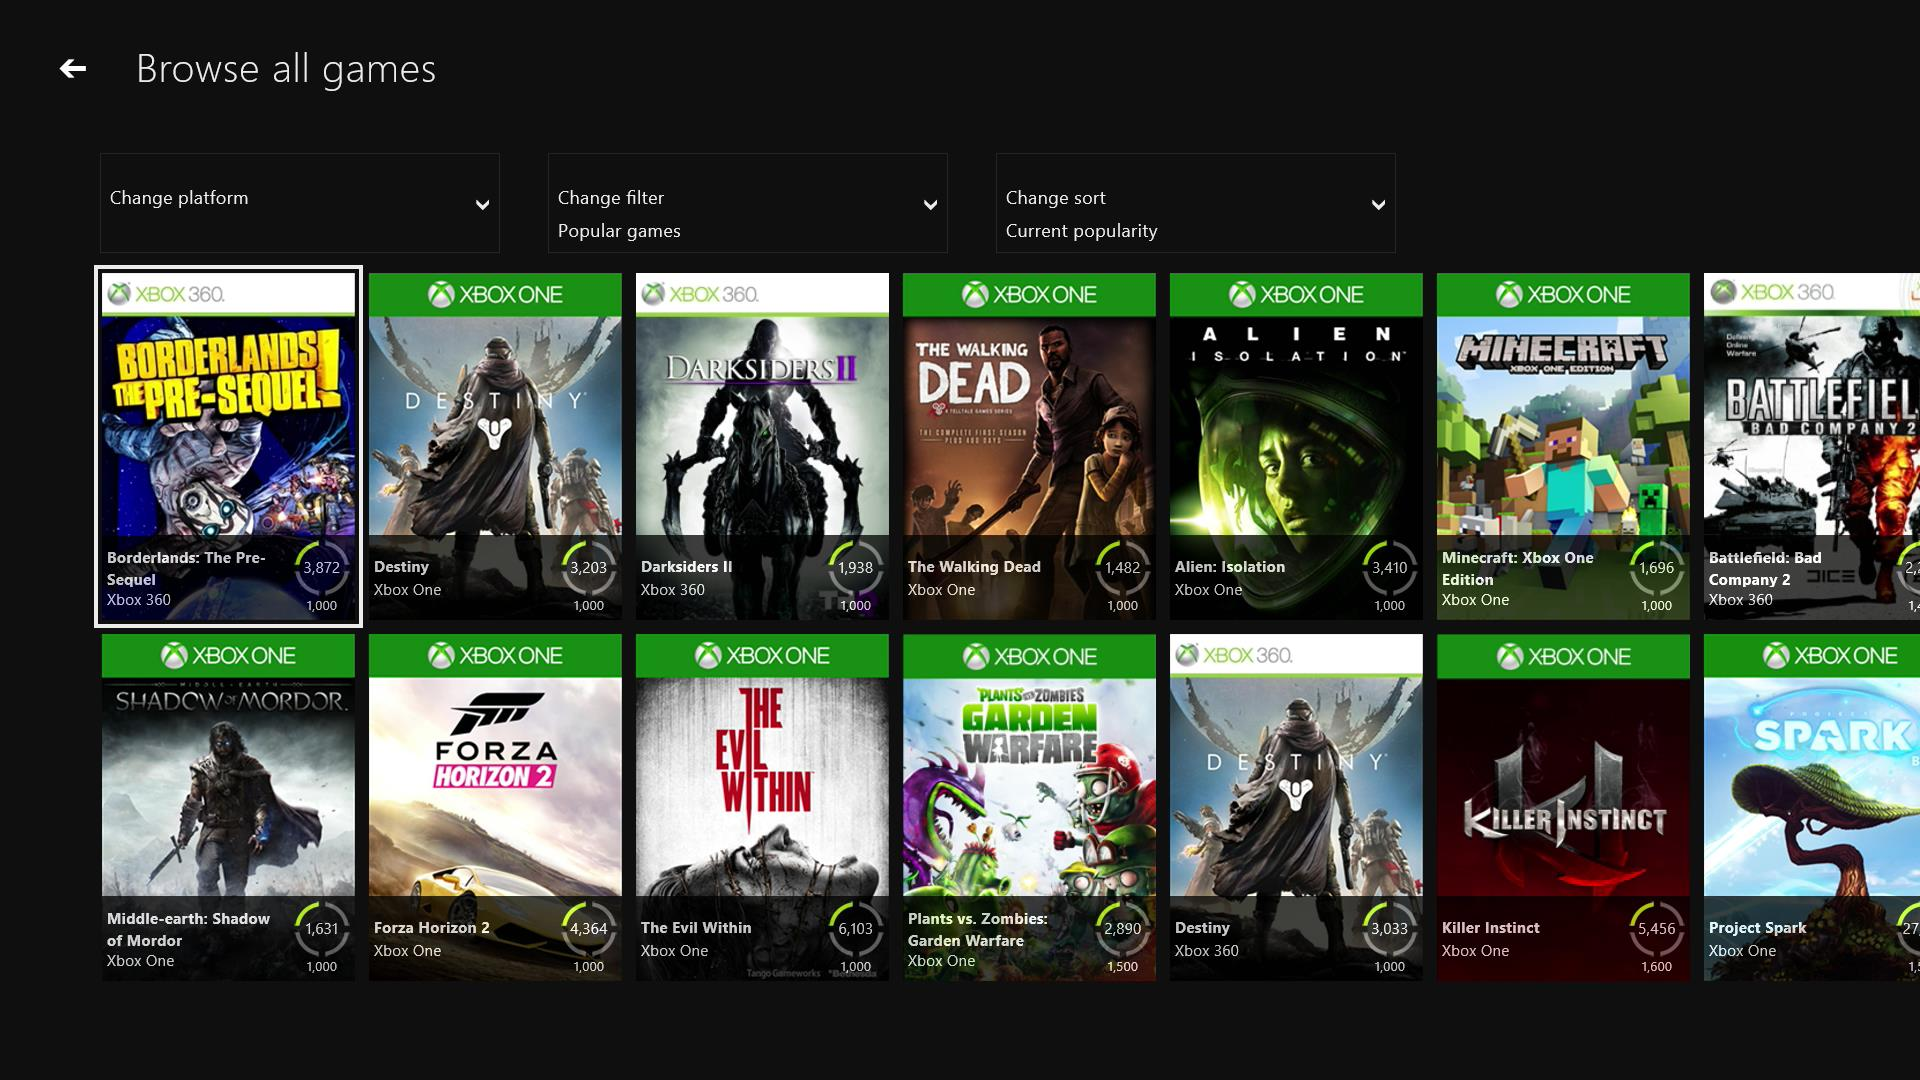 All Xbox Games List : All xbox one games list pixshark images